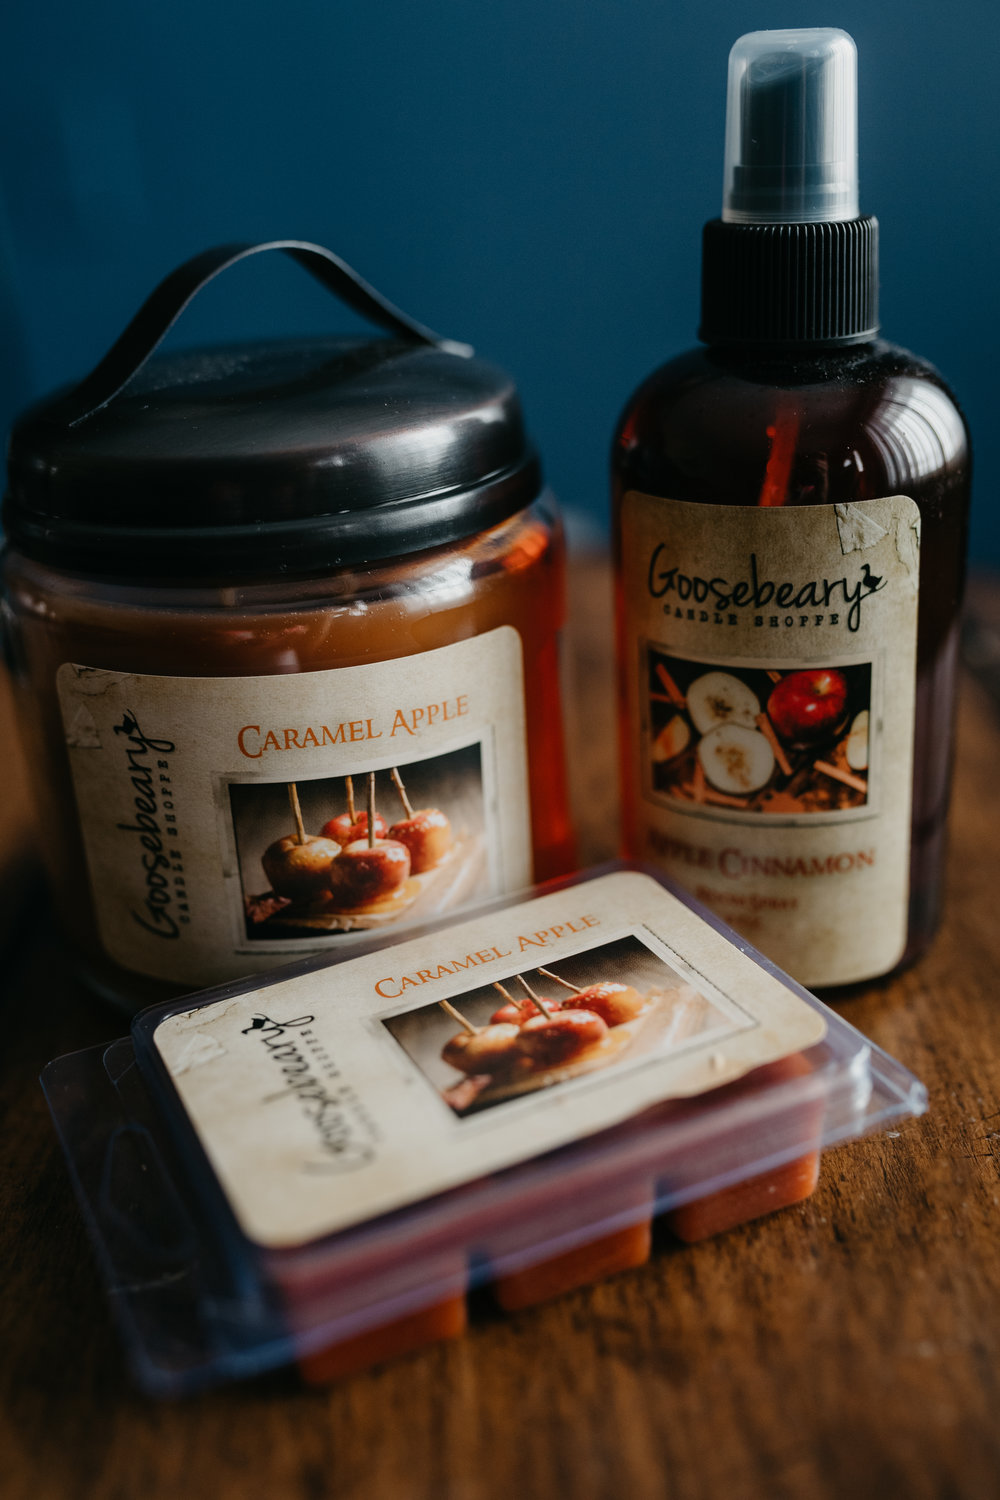 Day 3: Win these handmade goodies from the amazing Goosebeary Candle Shoppe! This is one of our favorite scents and we think you'll love it too! Included: Large jar candle, wax melts and room spray!